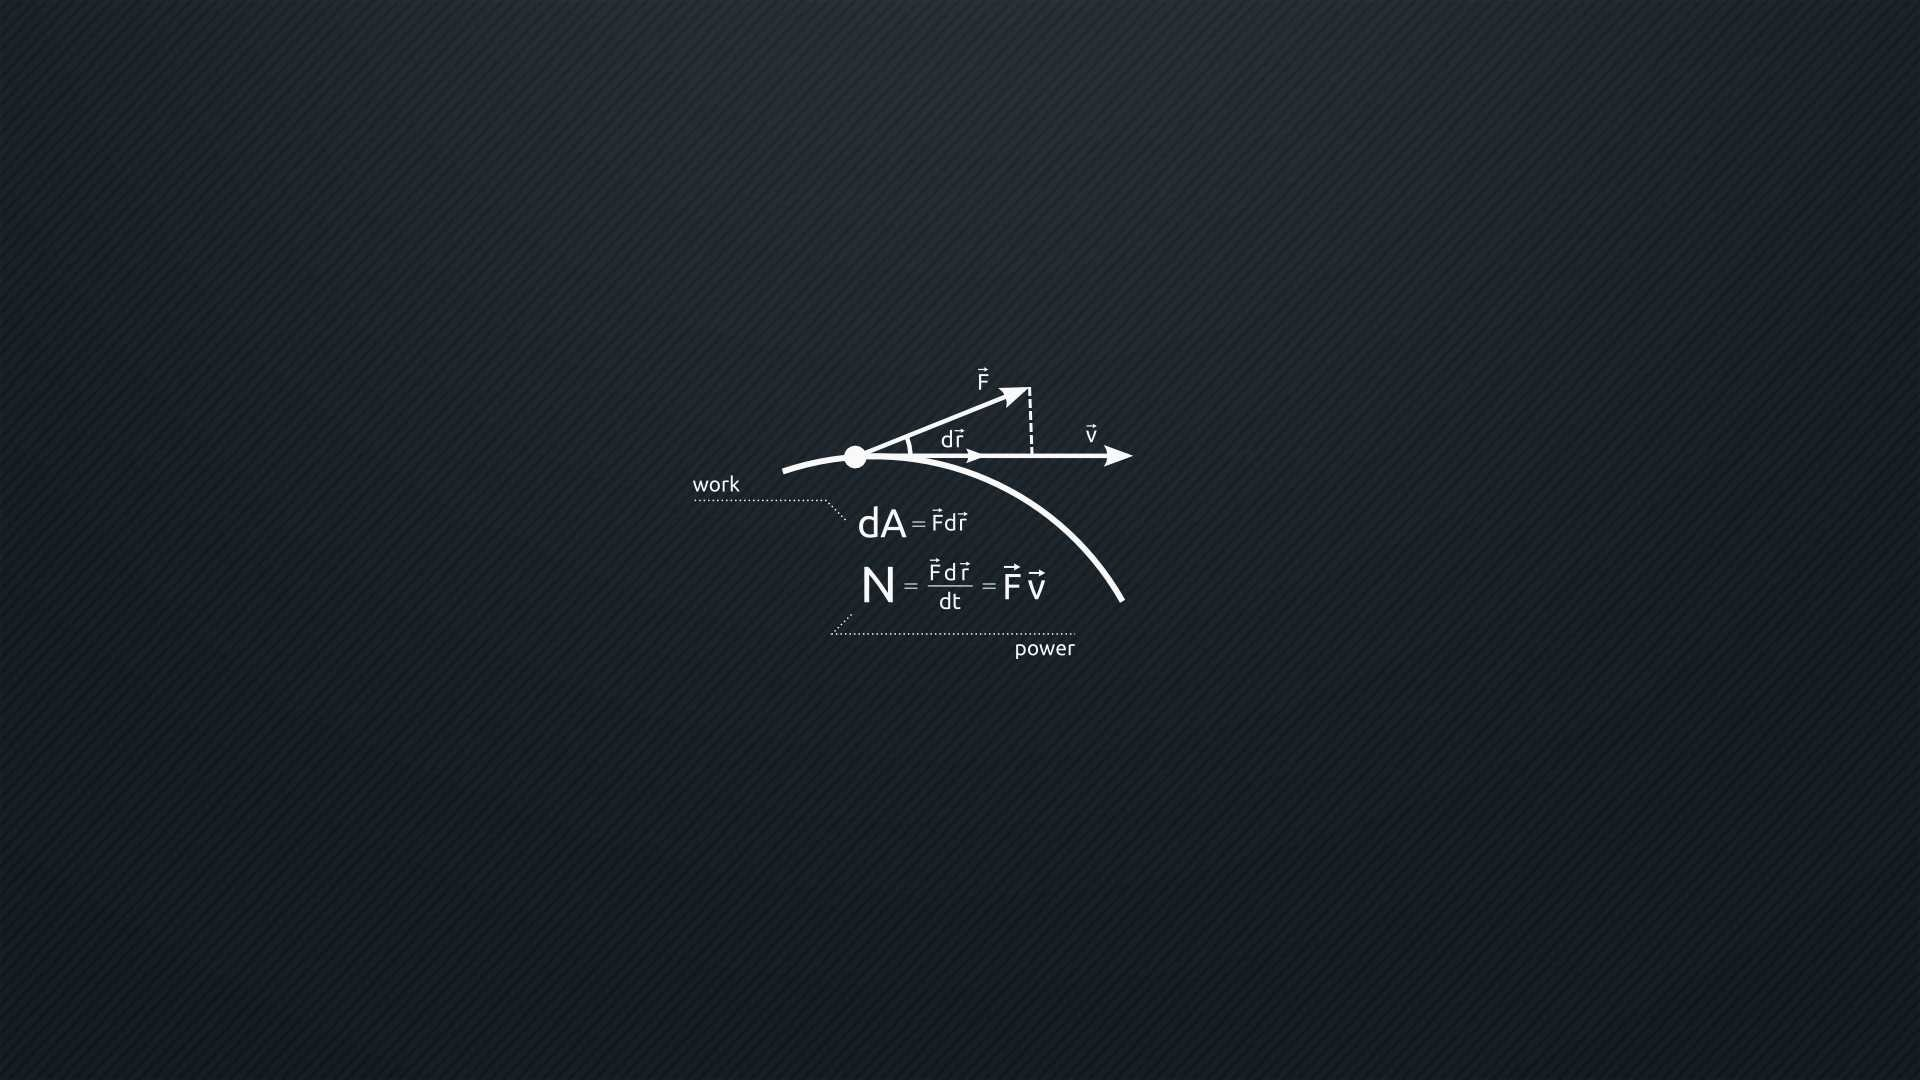 Minimalist Hd Wallpaper Backgrounds Photos Images Pictures Yl Computing